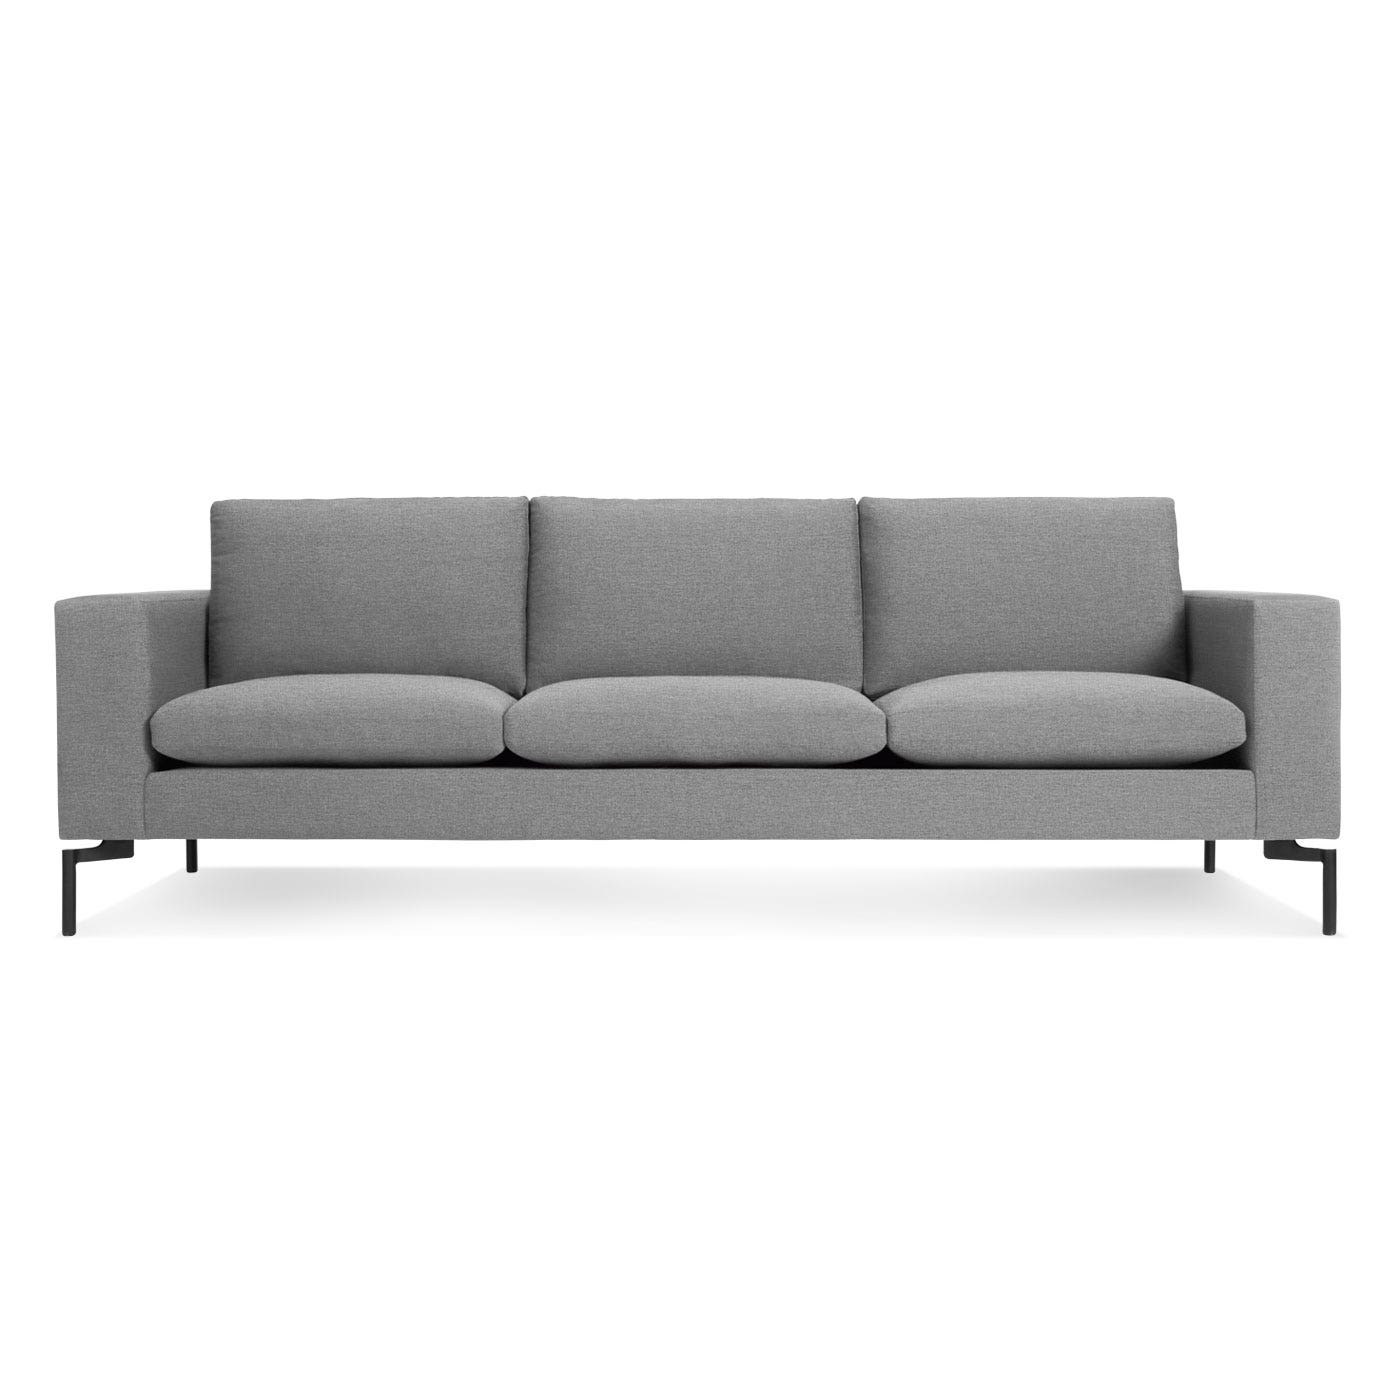 New Standard Sofa Contemporary Sofas Blu Dot - Ashford sofa